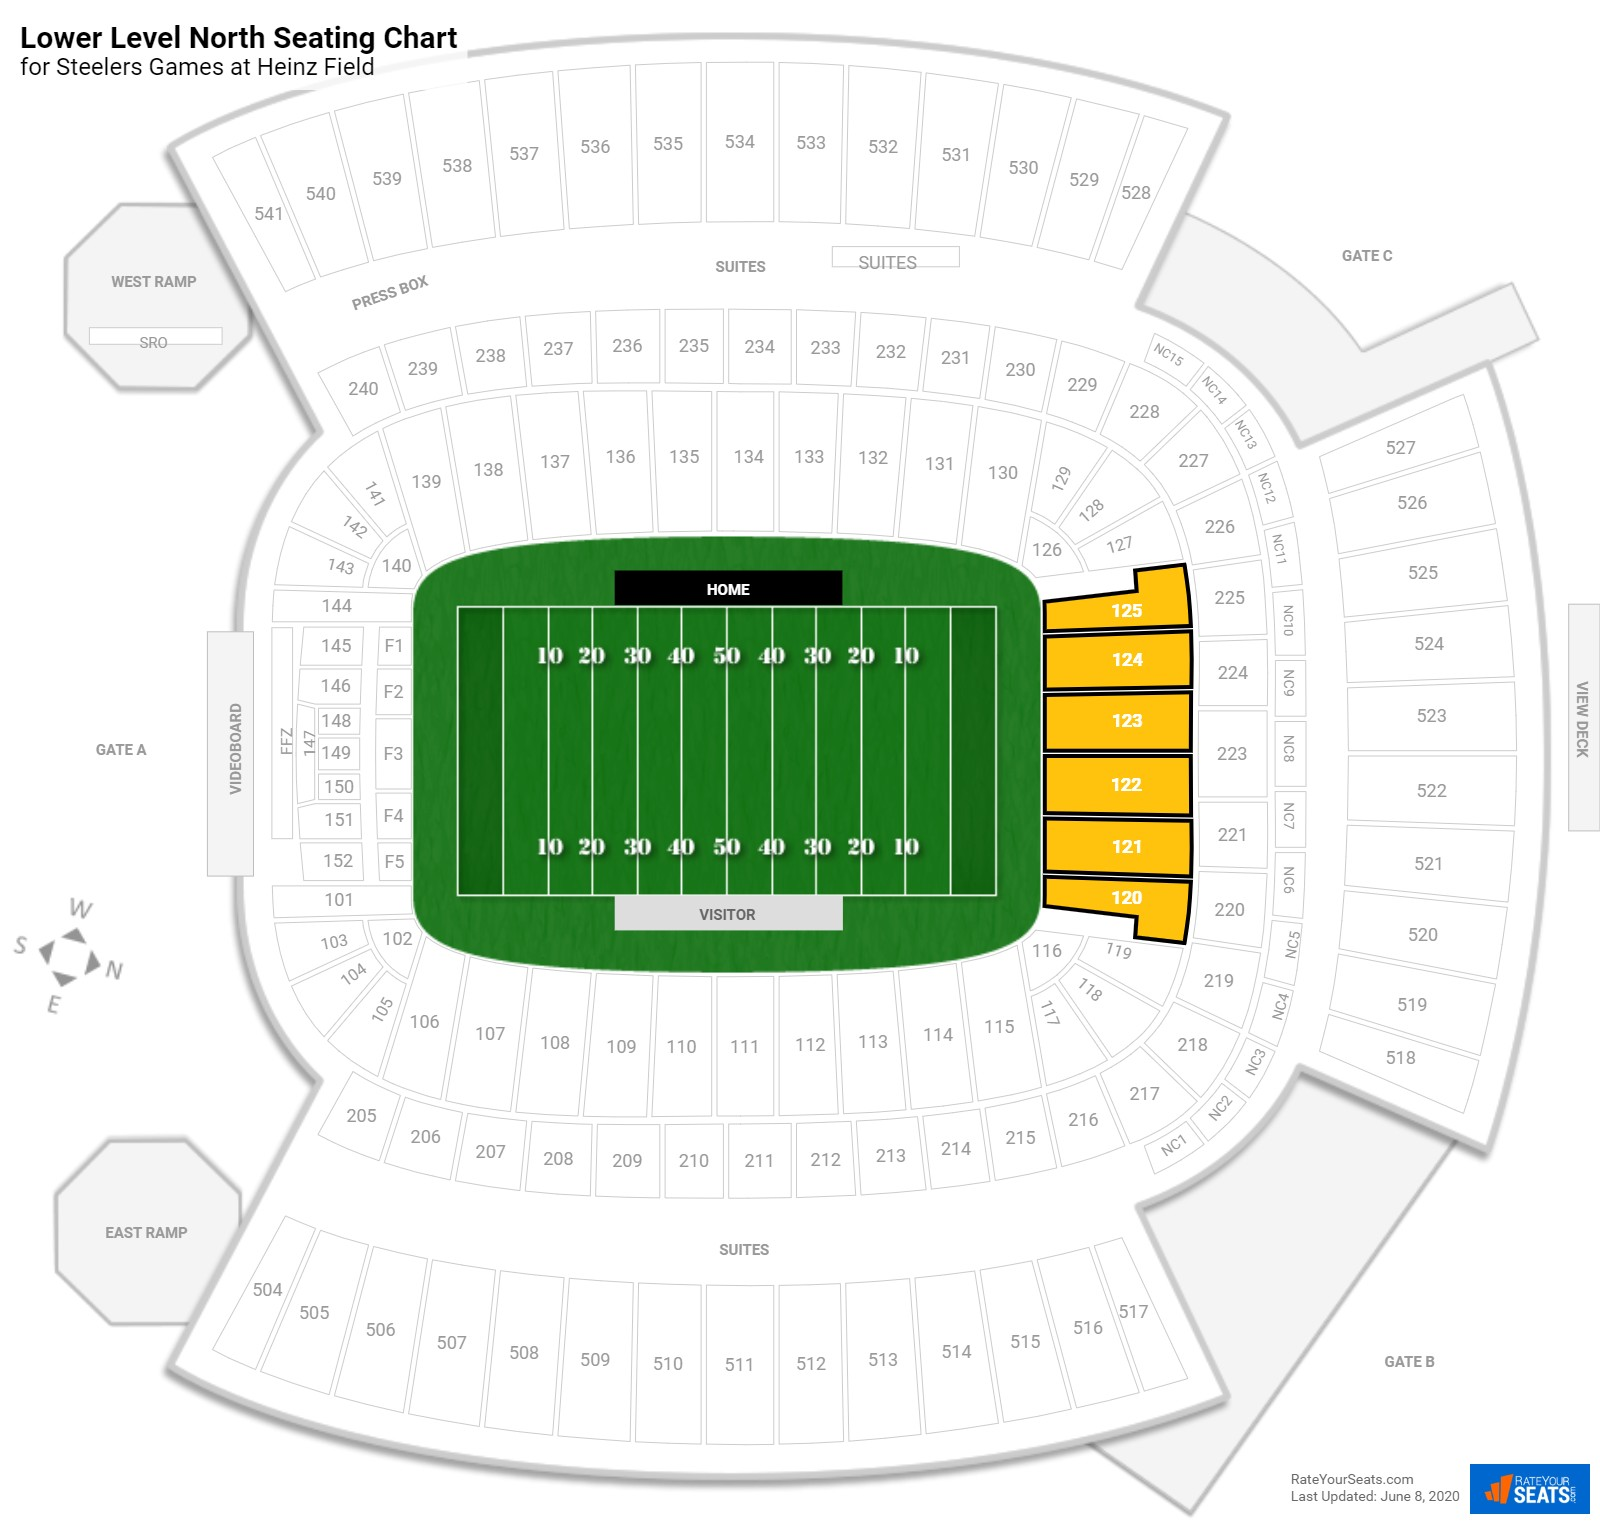 Heinz Field Lower Level North seating chart